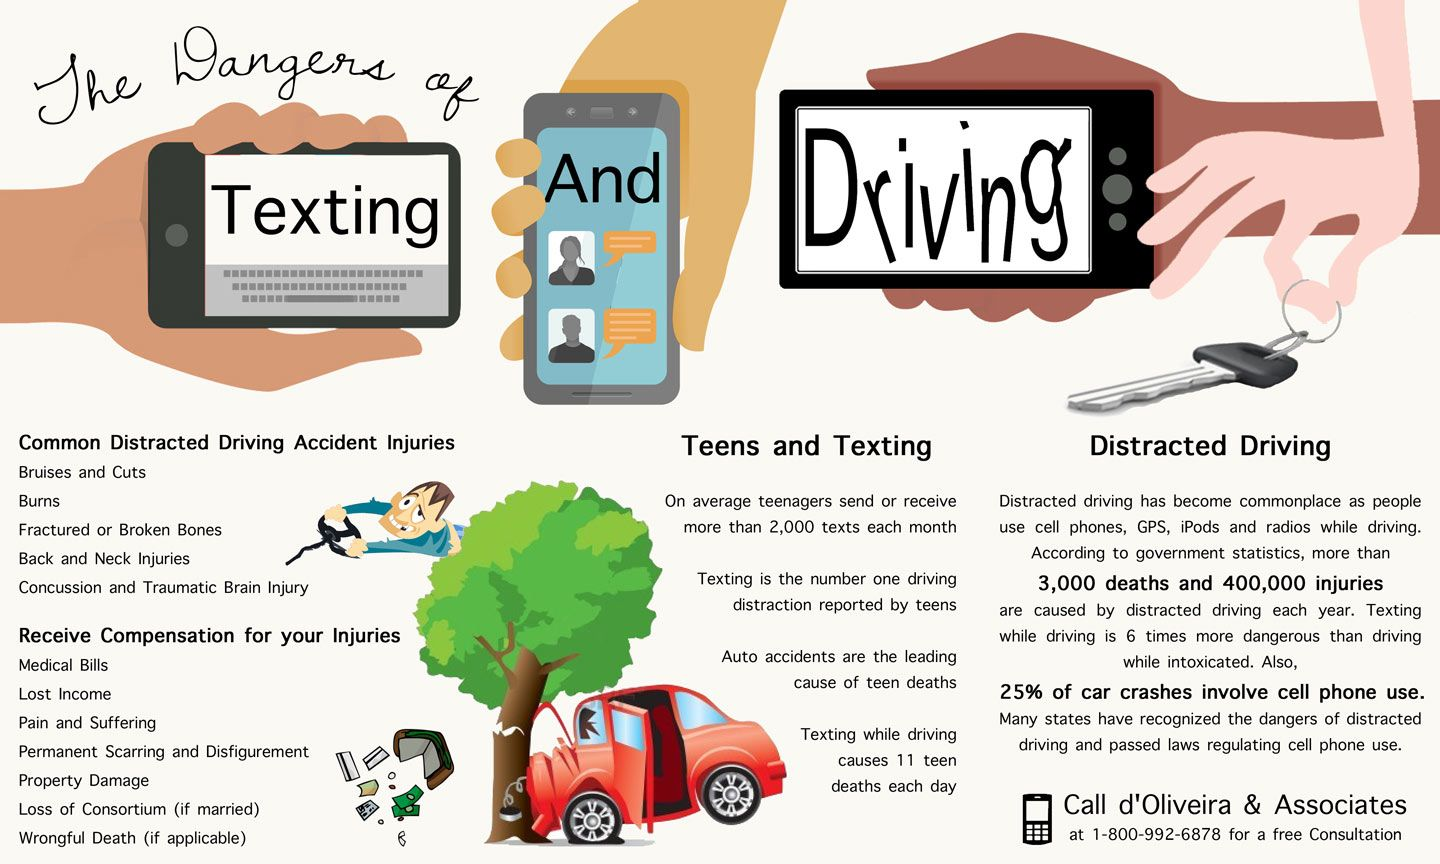 best ideas about texting and driving accidents 17 best ideas about texting and driving accidents car died while driving texting while driving and distracted driving